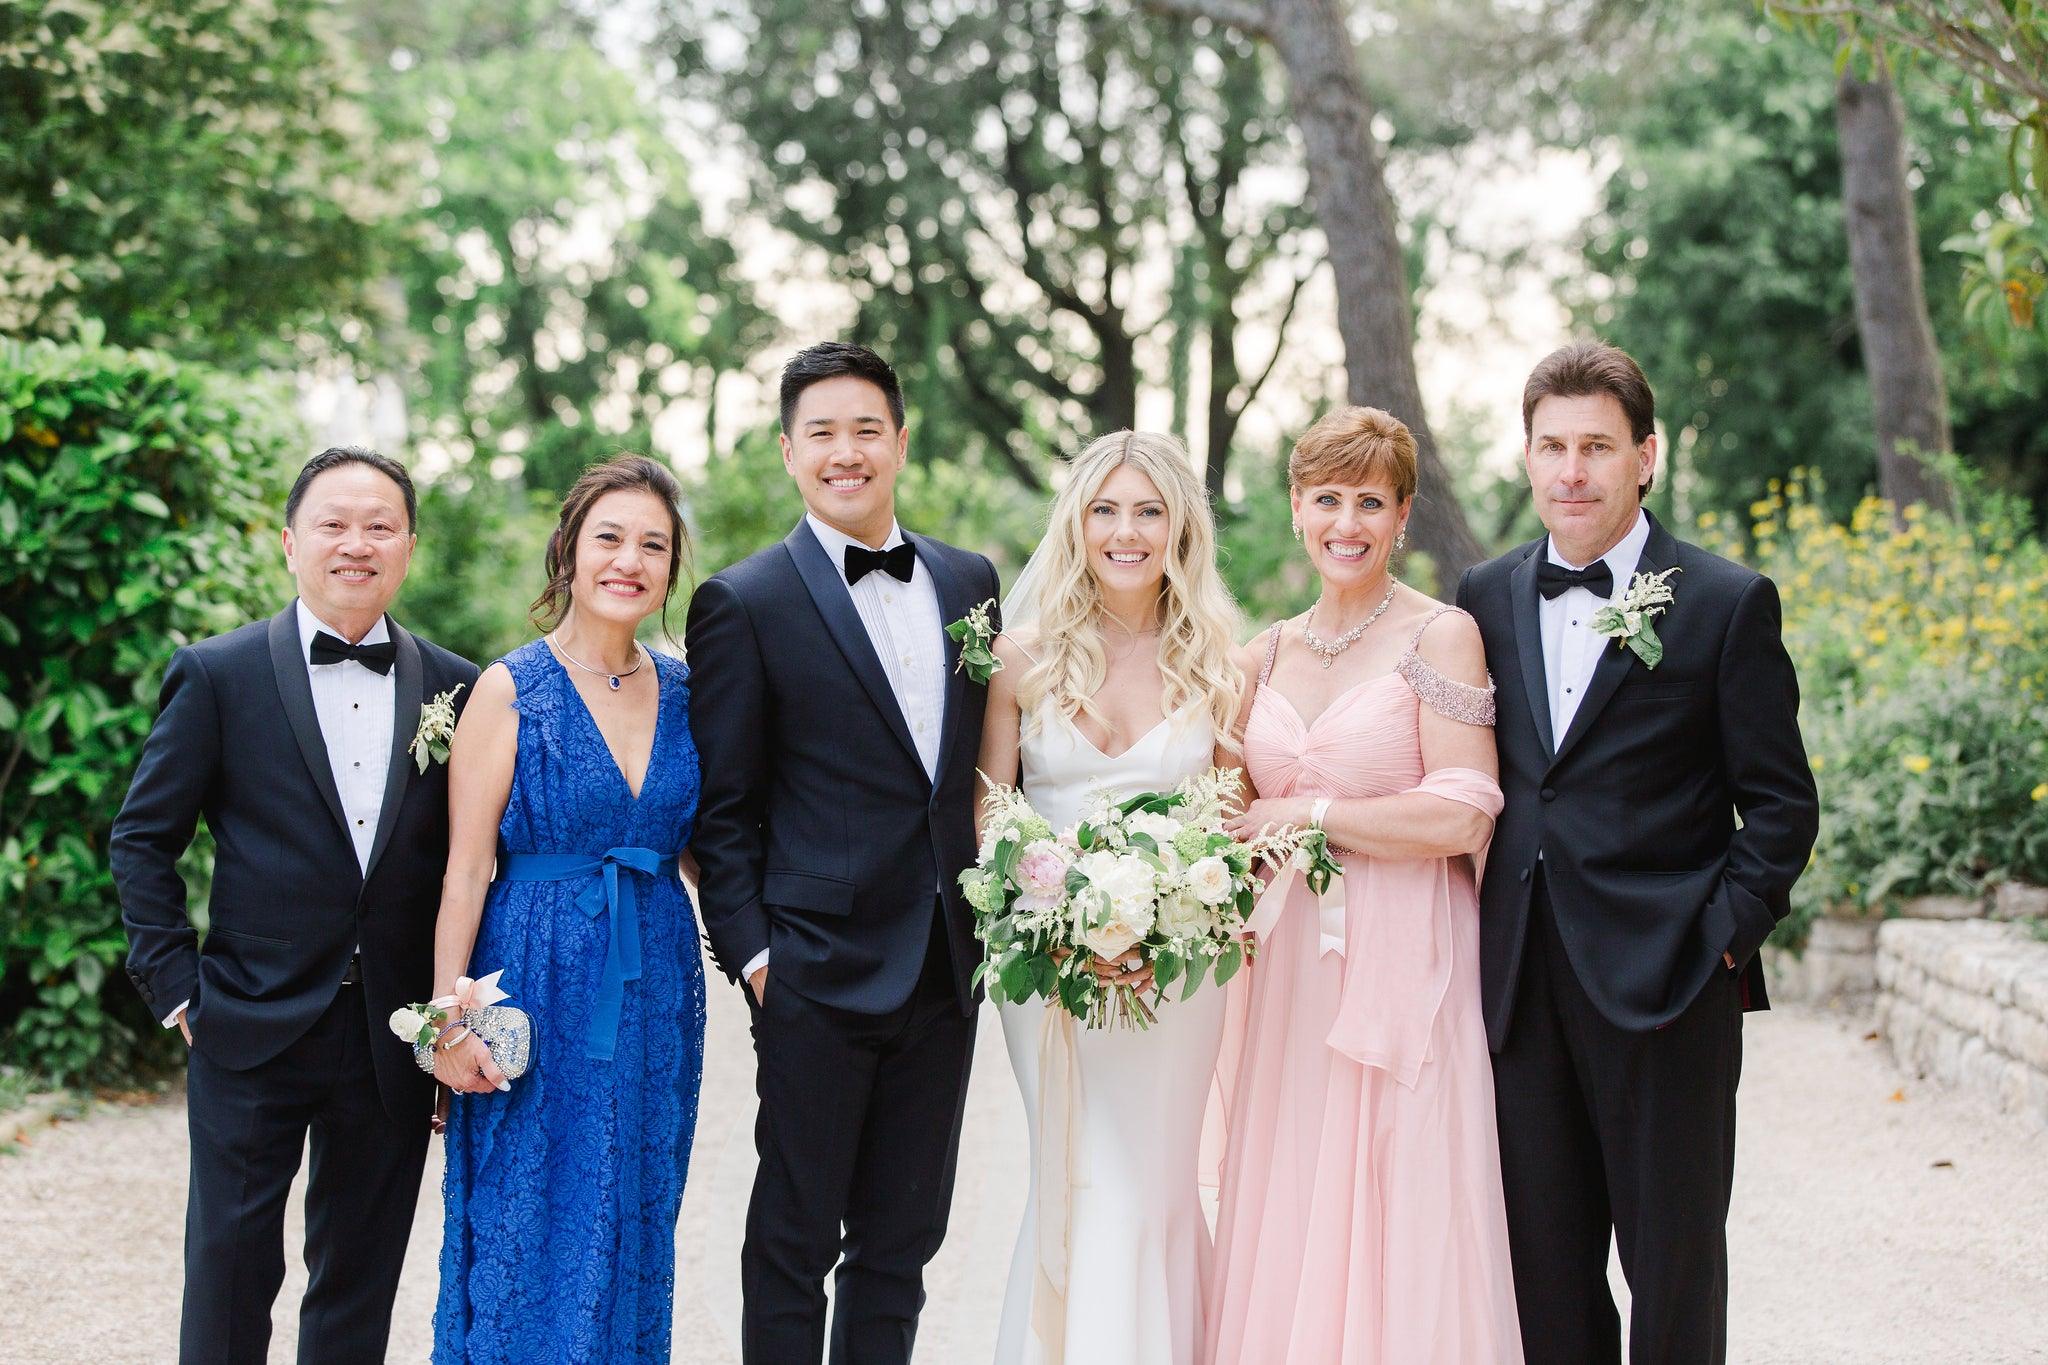 Katie Dean & Jon Tam romantic chateau wedding in provence, family portrait